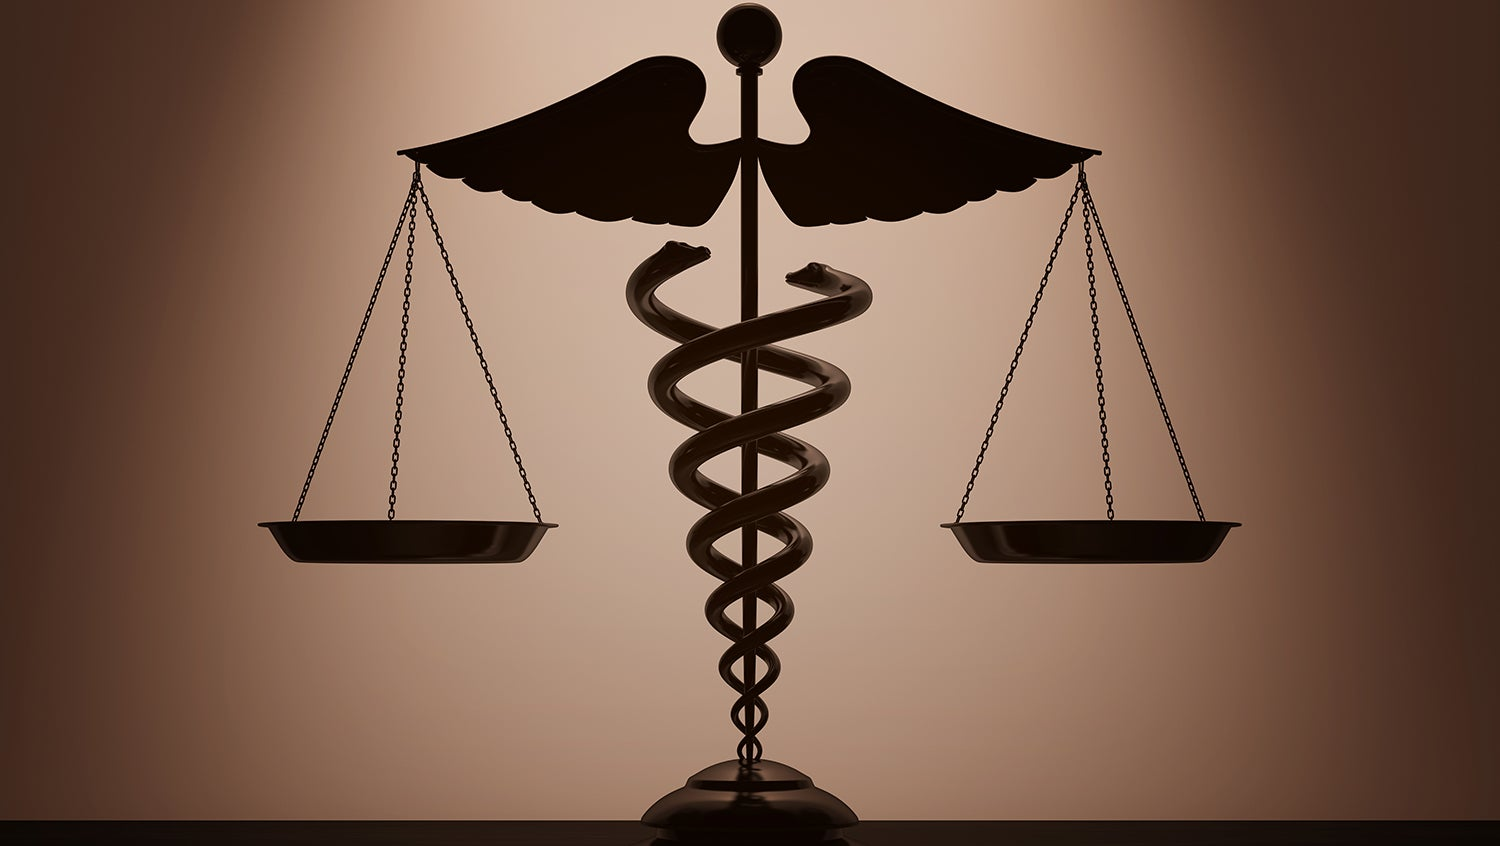 Medical caduceus symbol as justice scales on a brown backdrop